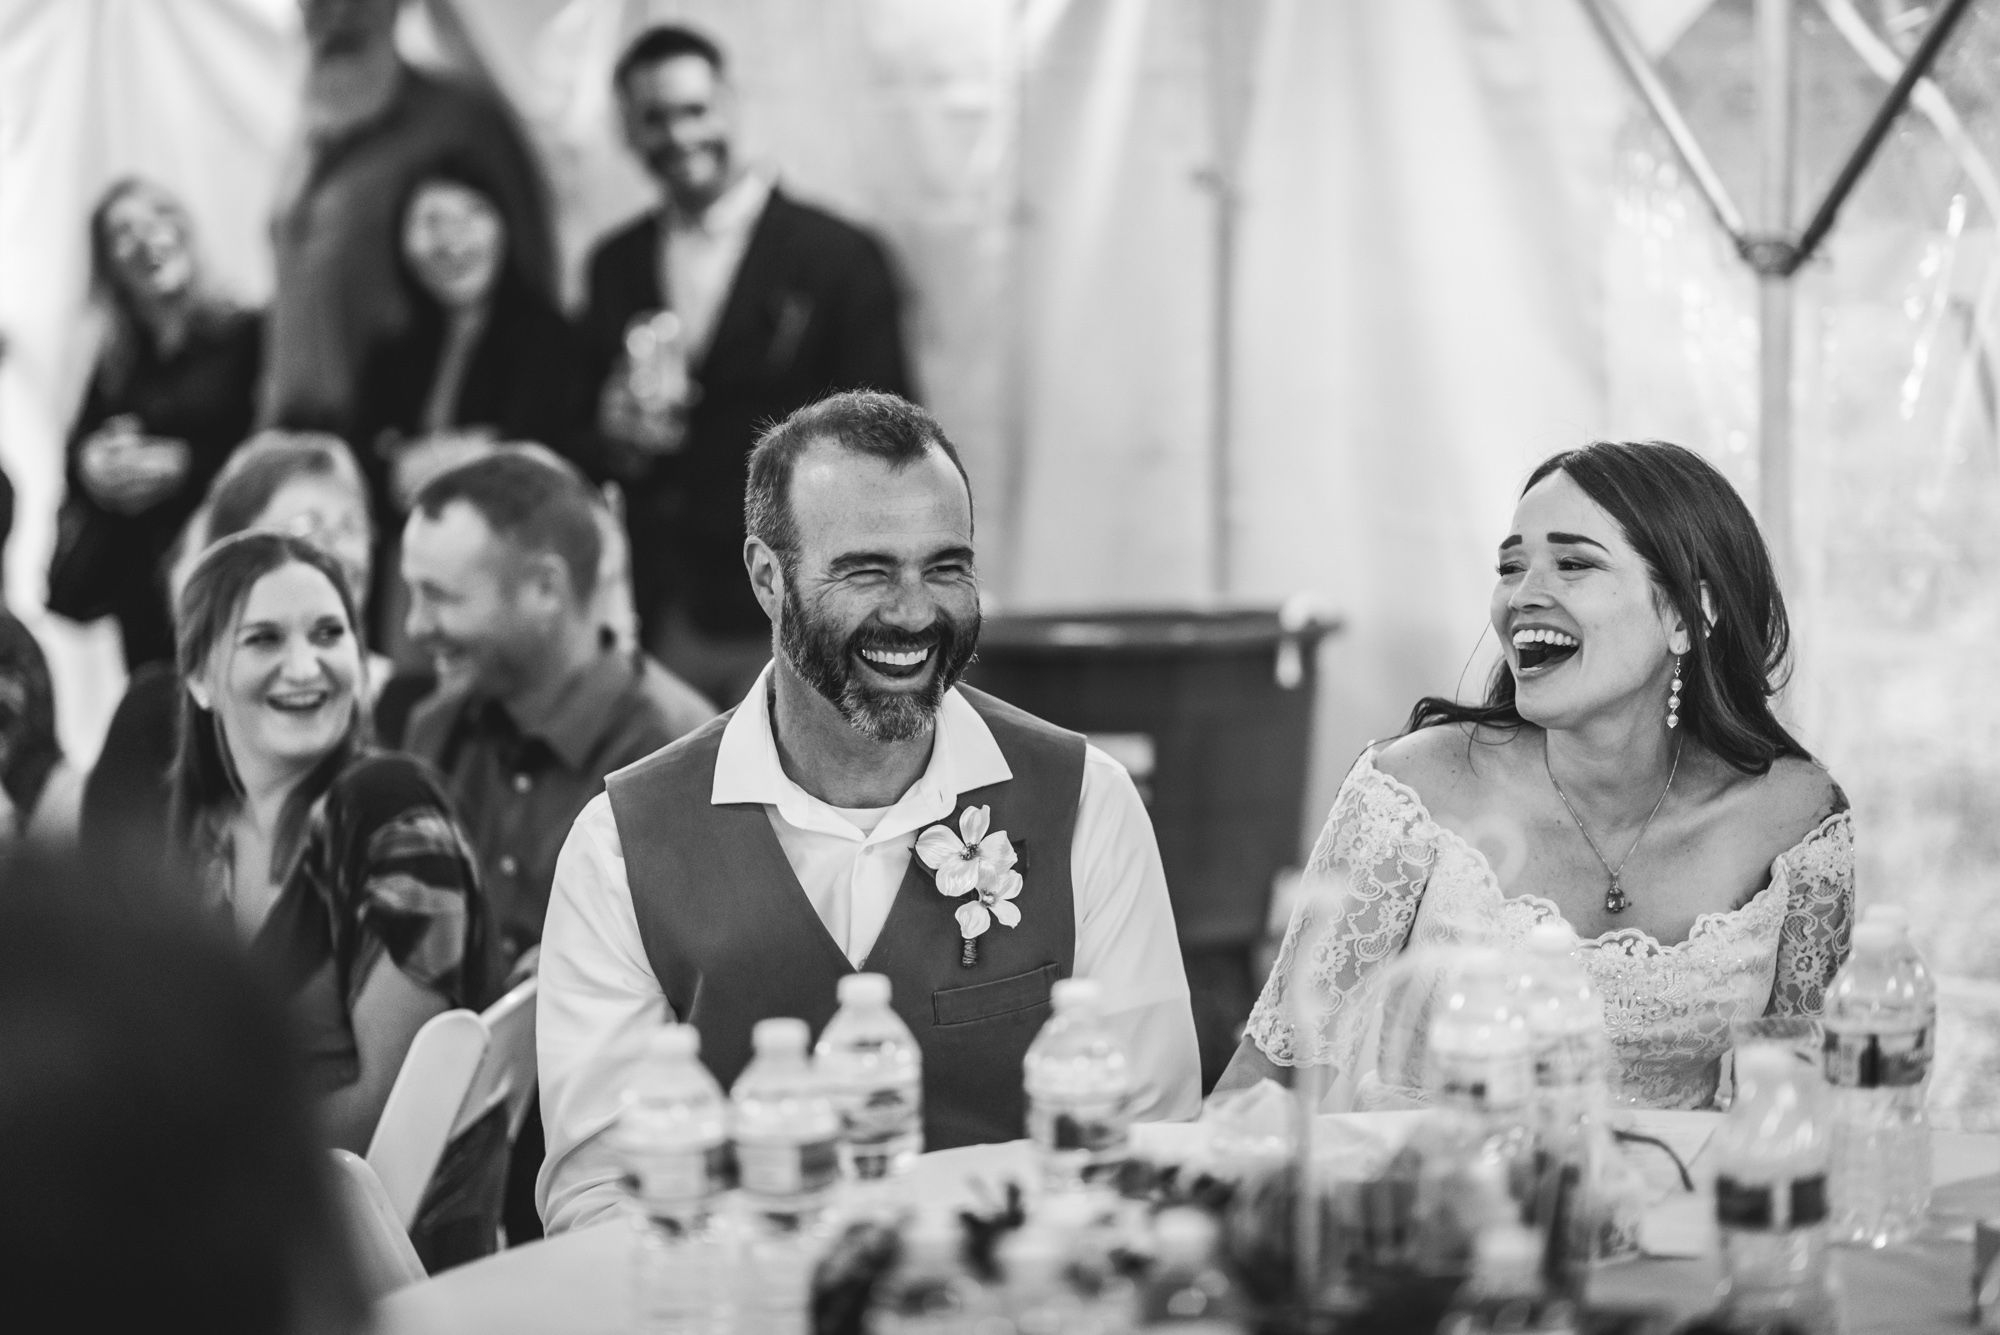 Documentary photo of a bride and groom laugh together at their wedding reception